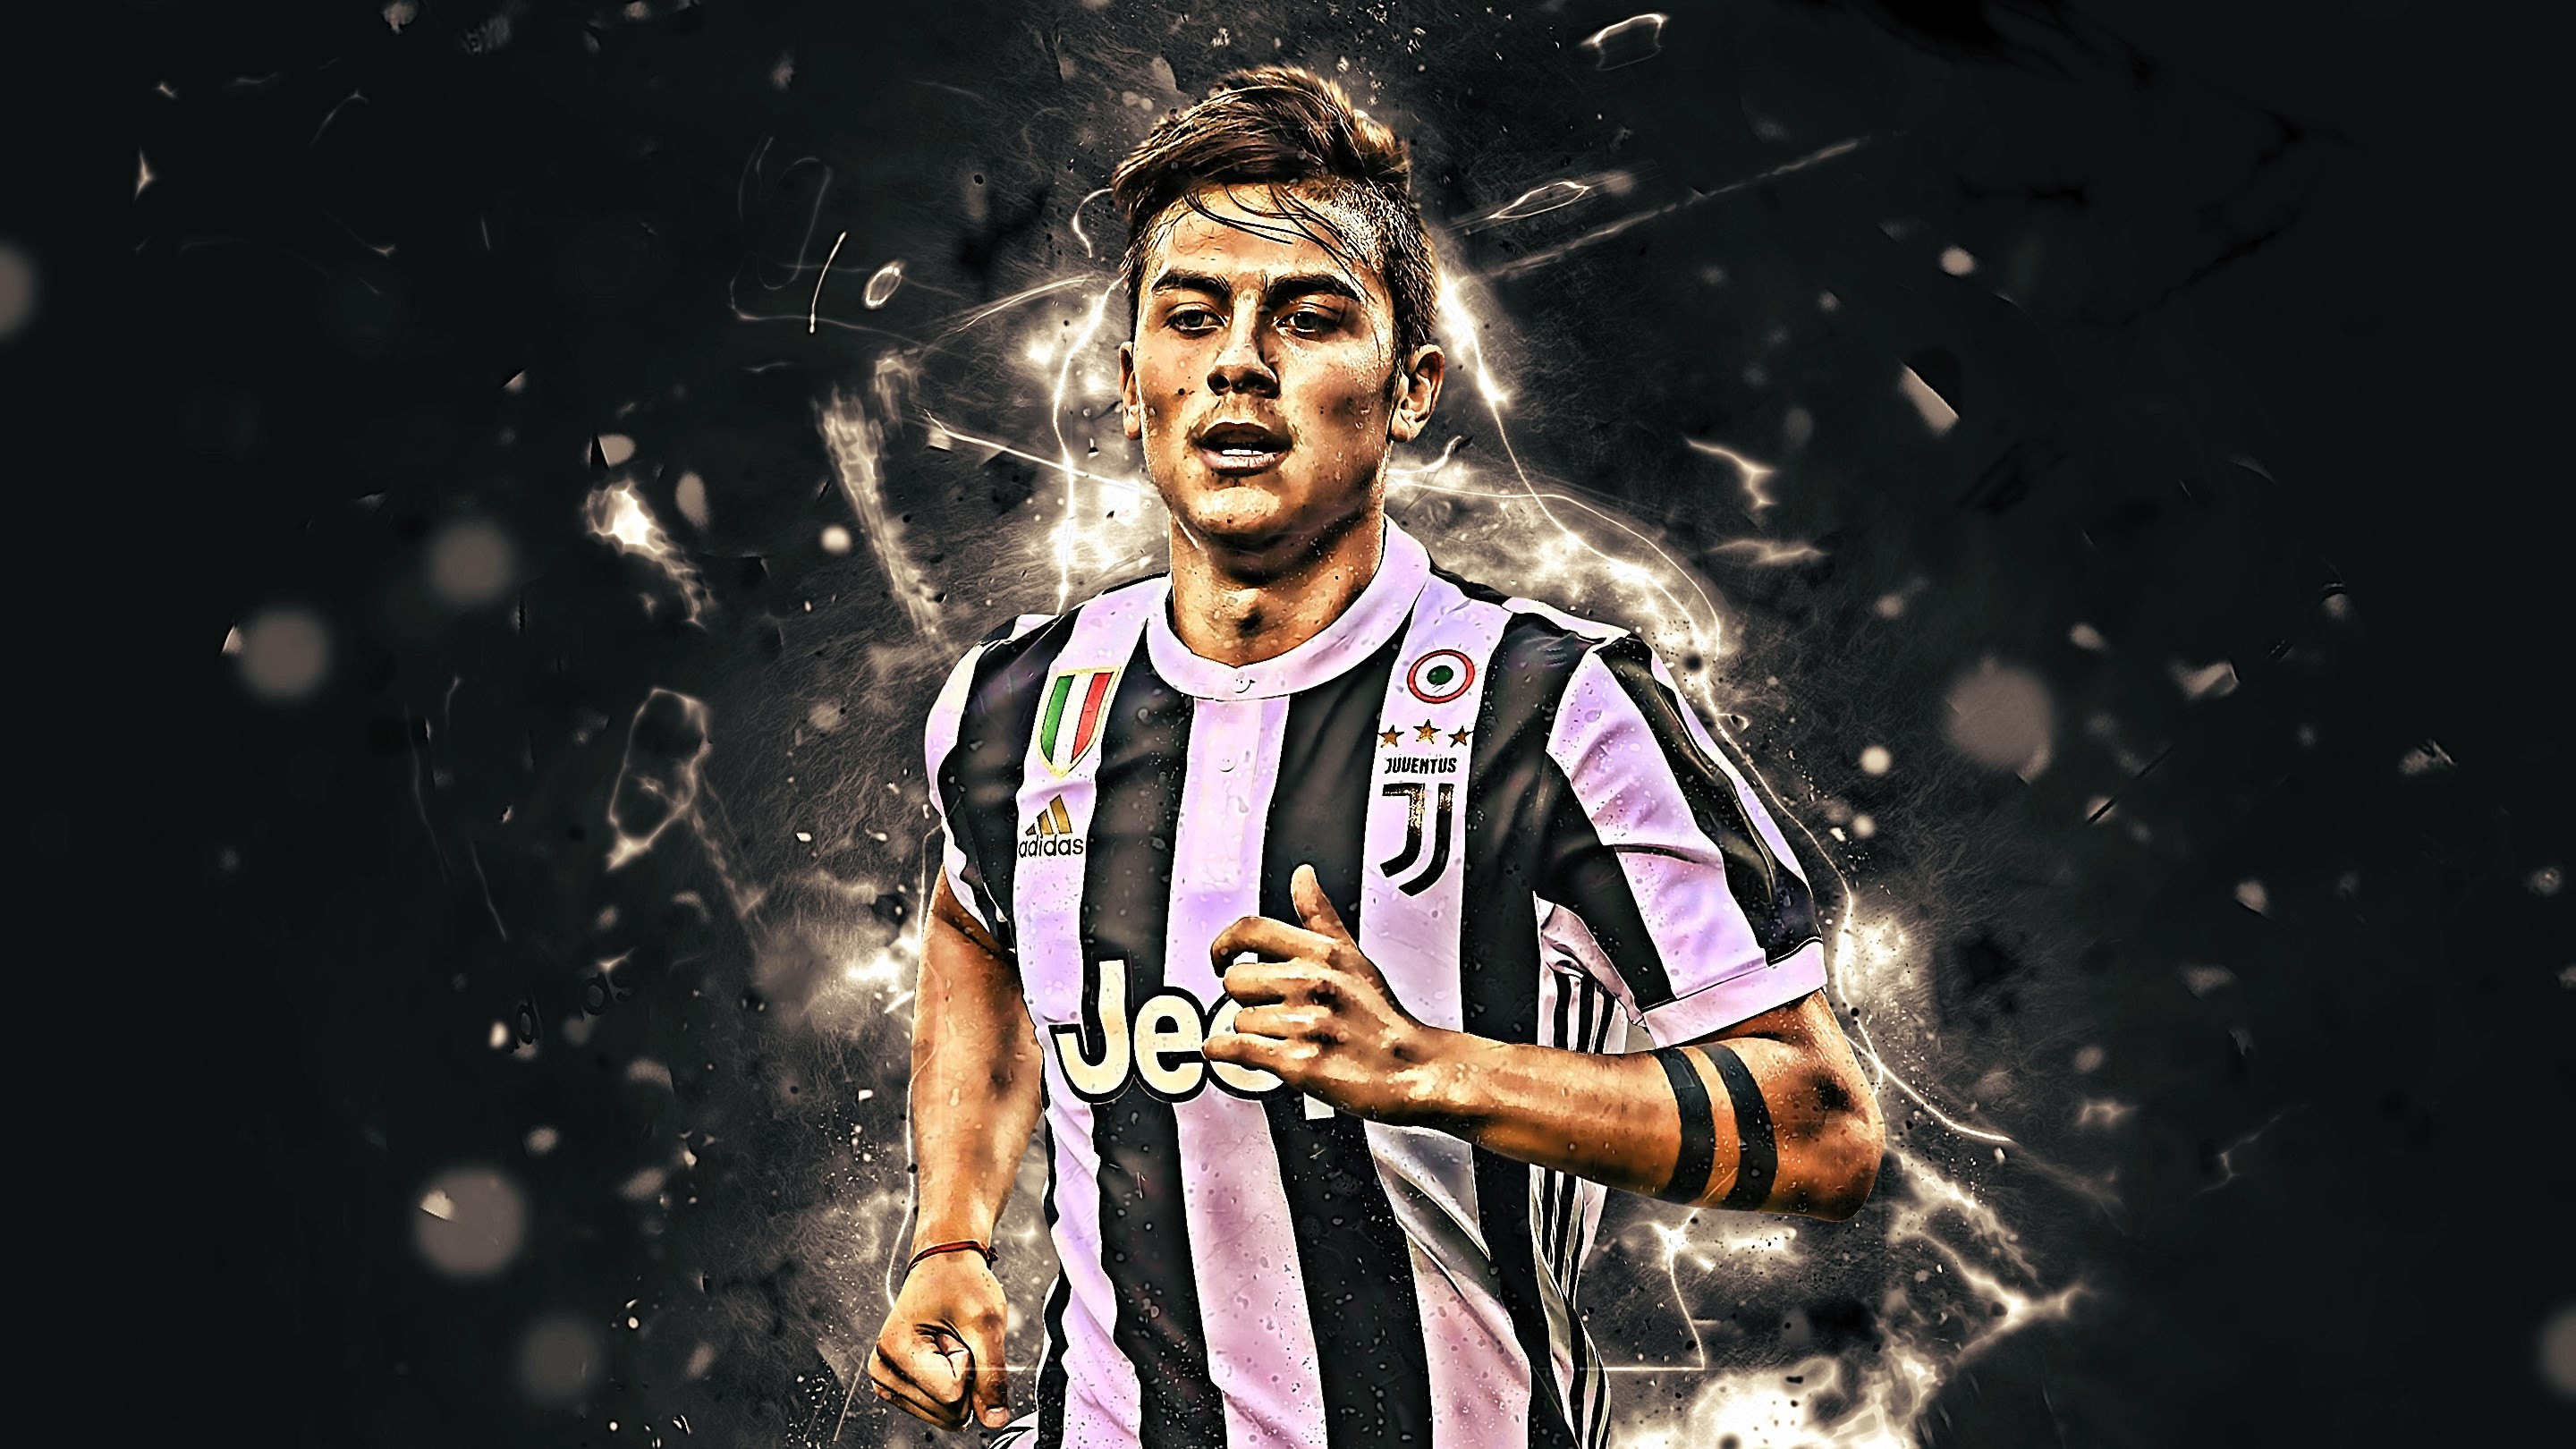 Paulo Dybala wallpaper 2880x1620